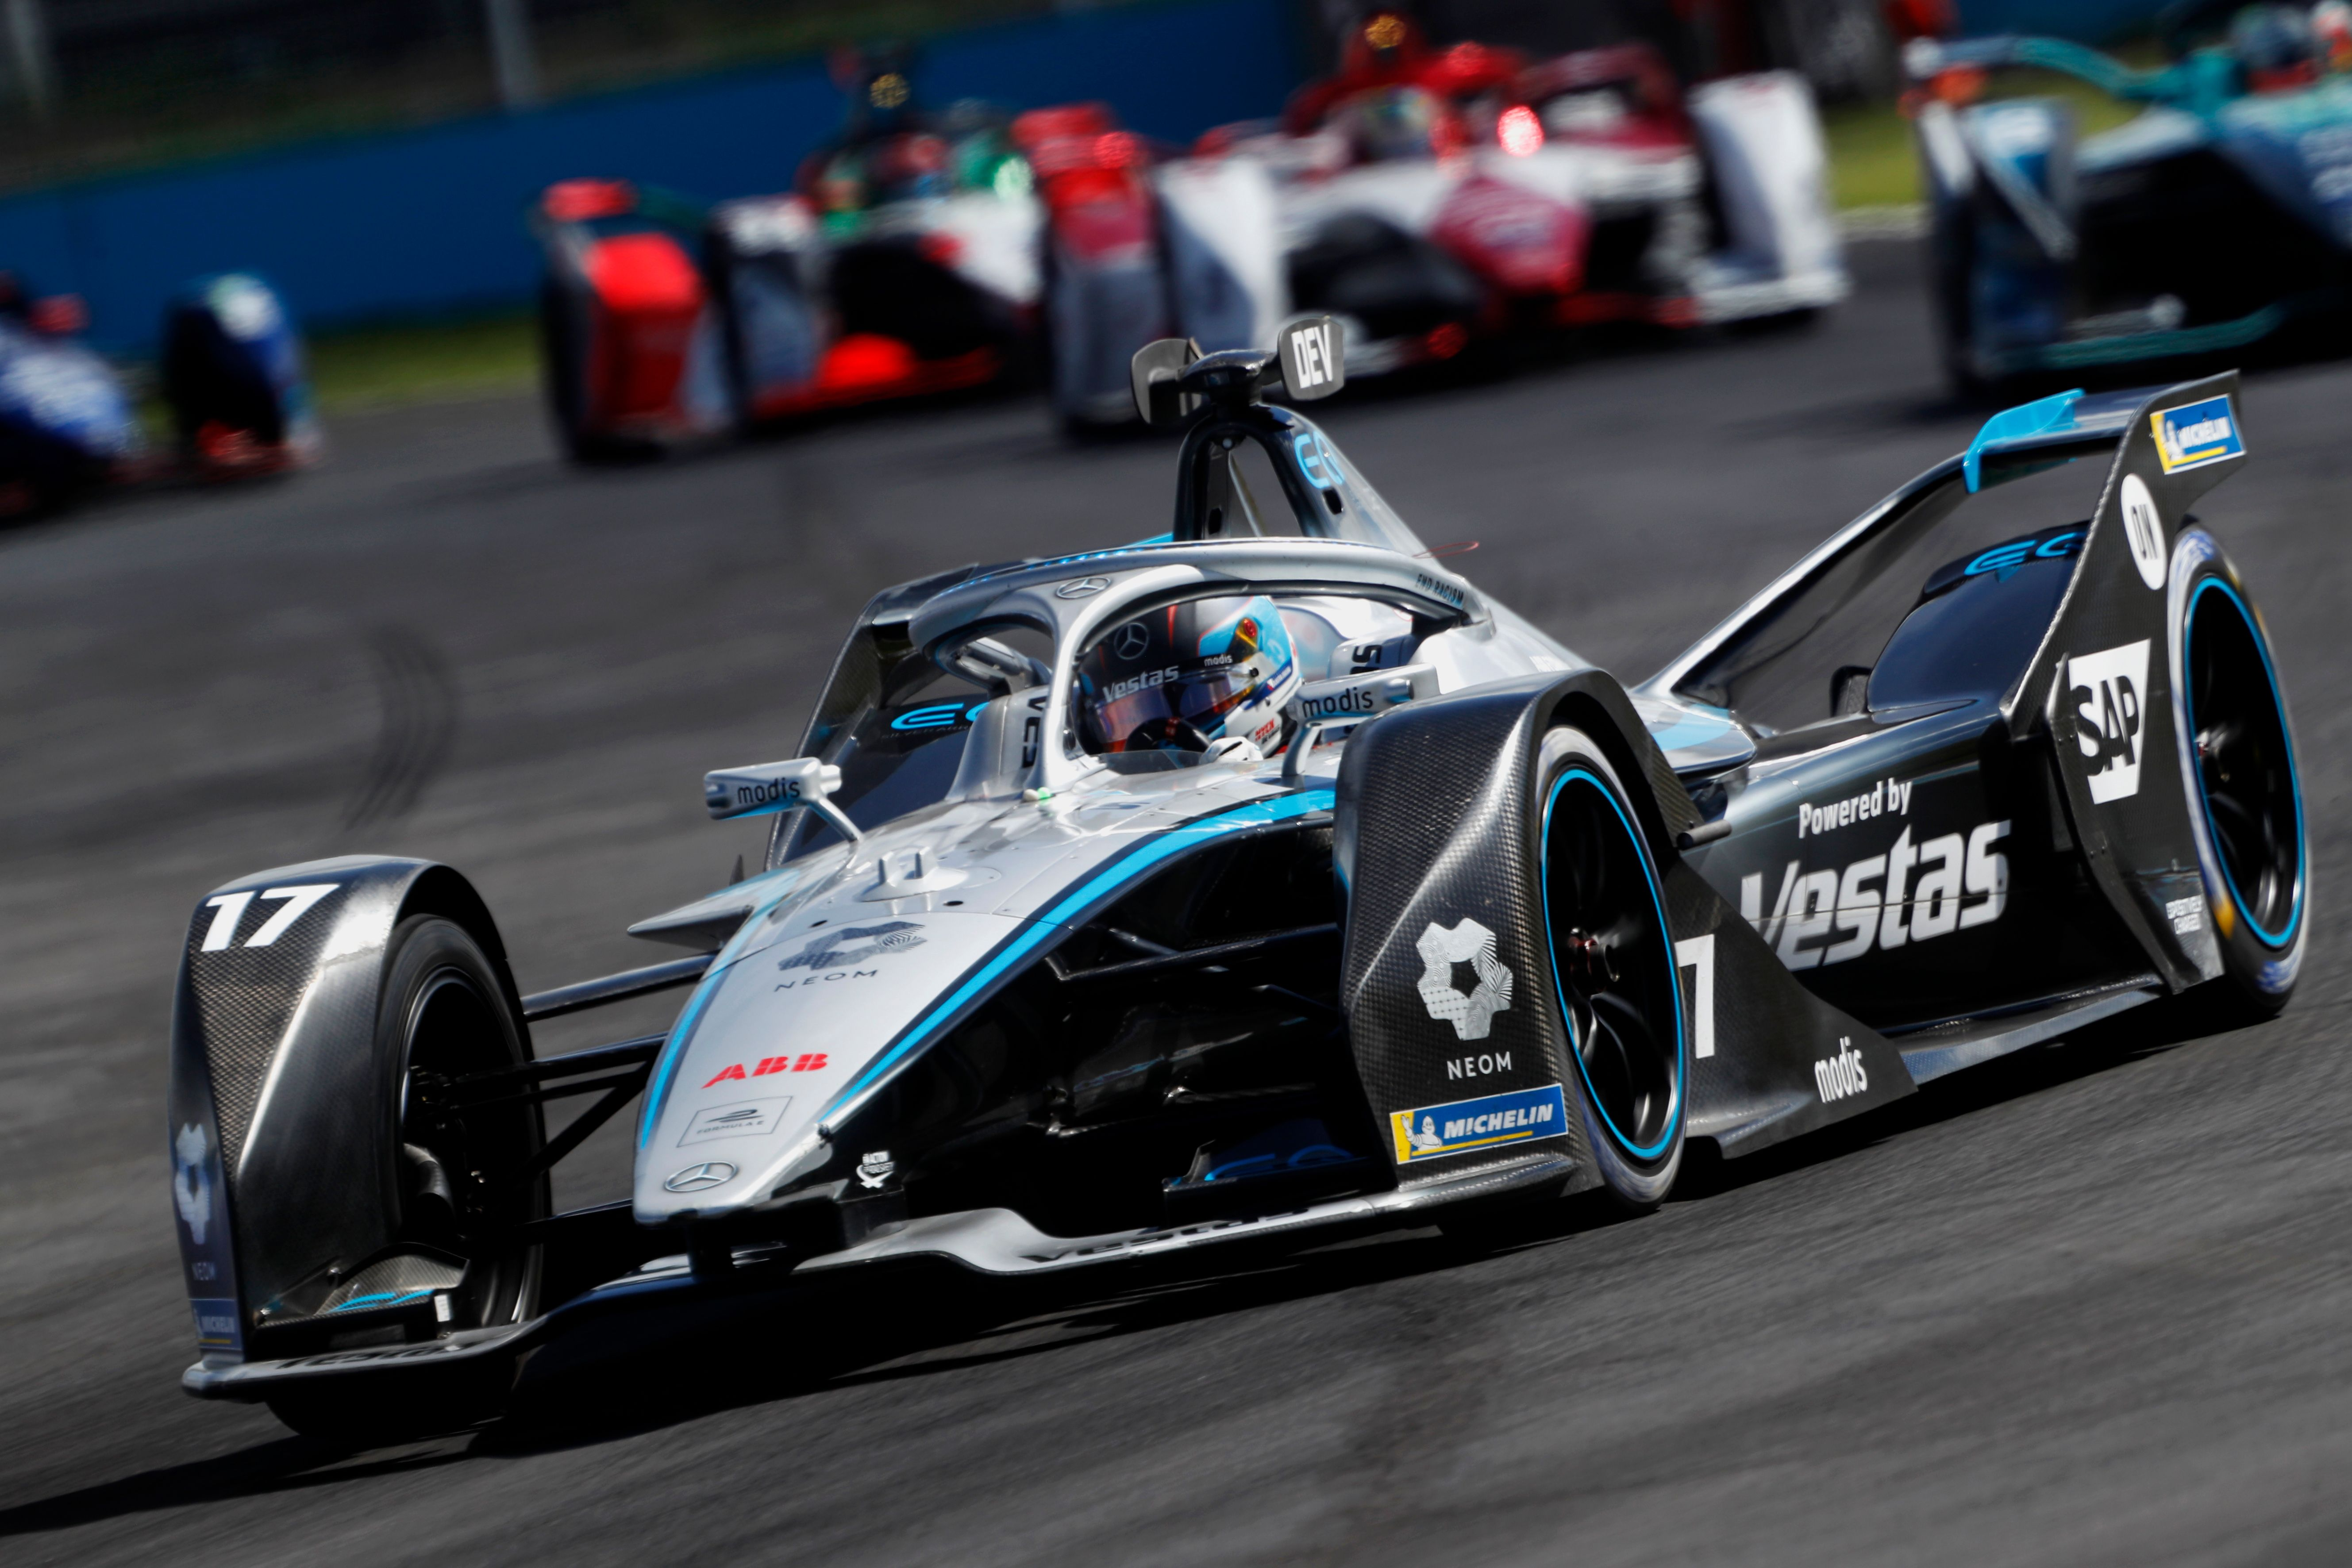 2020/21 Formula E: Team-by-Team End of Season Preview - part one